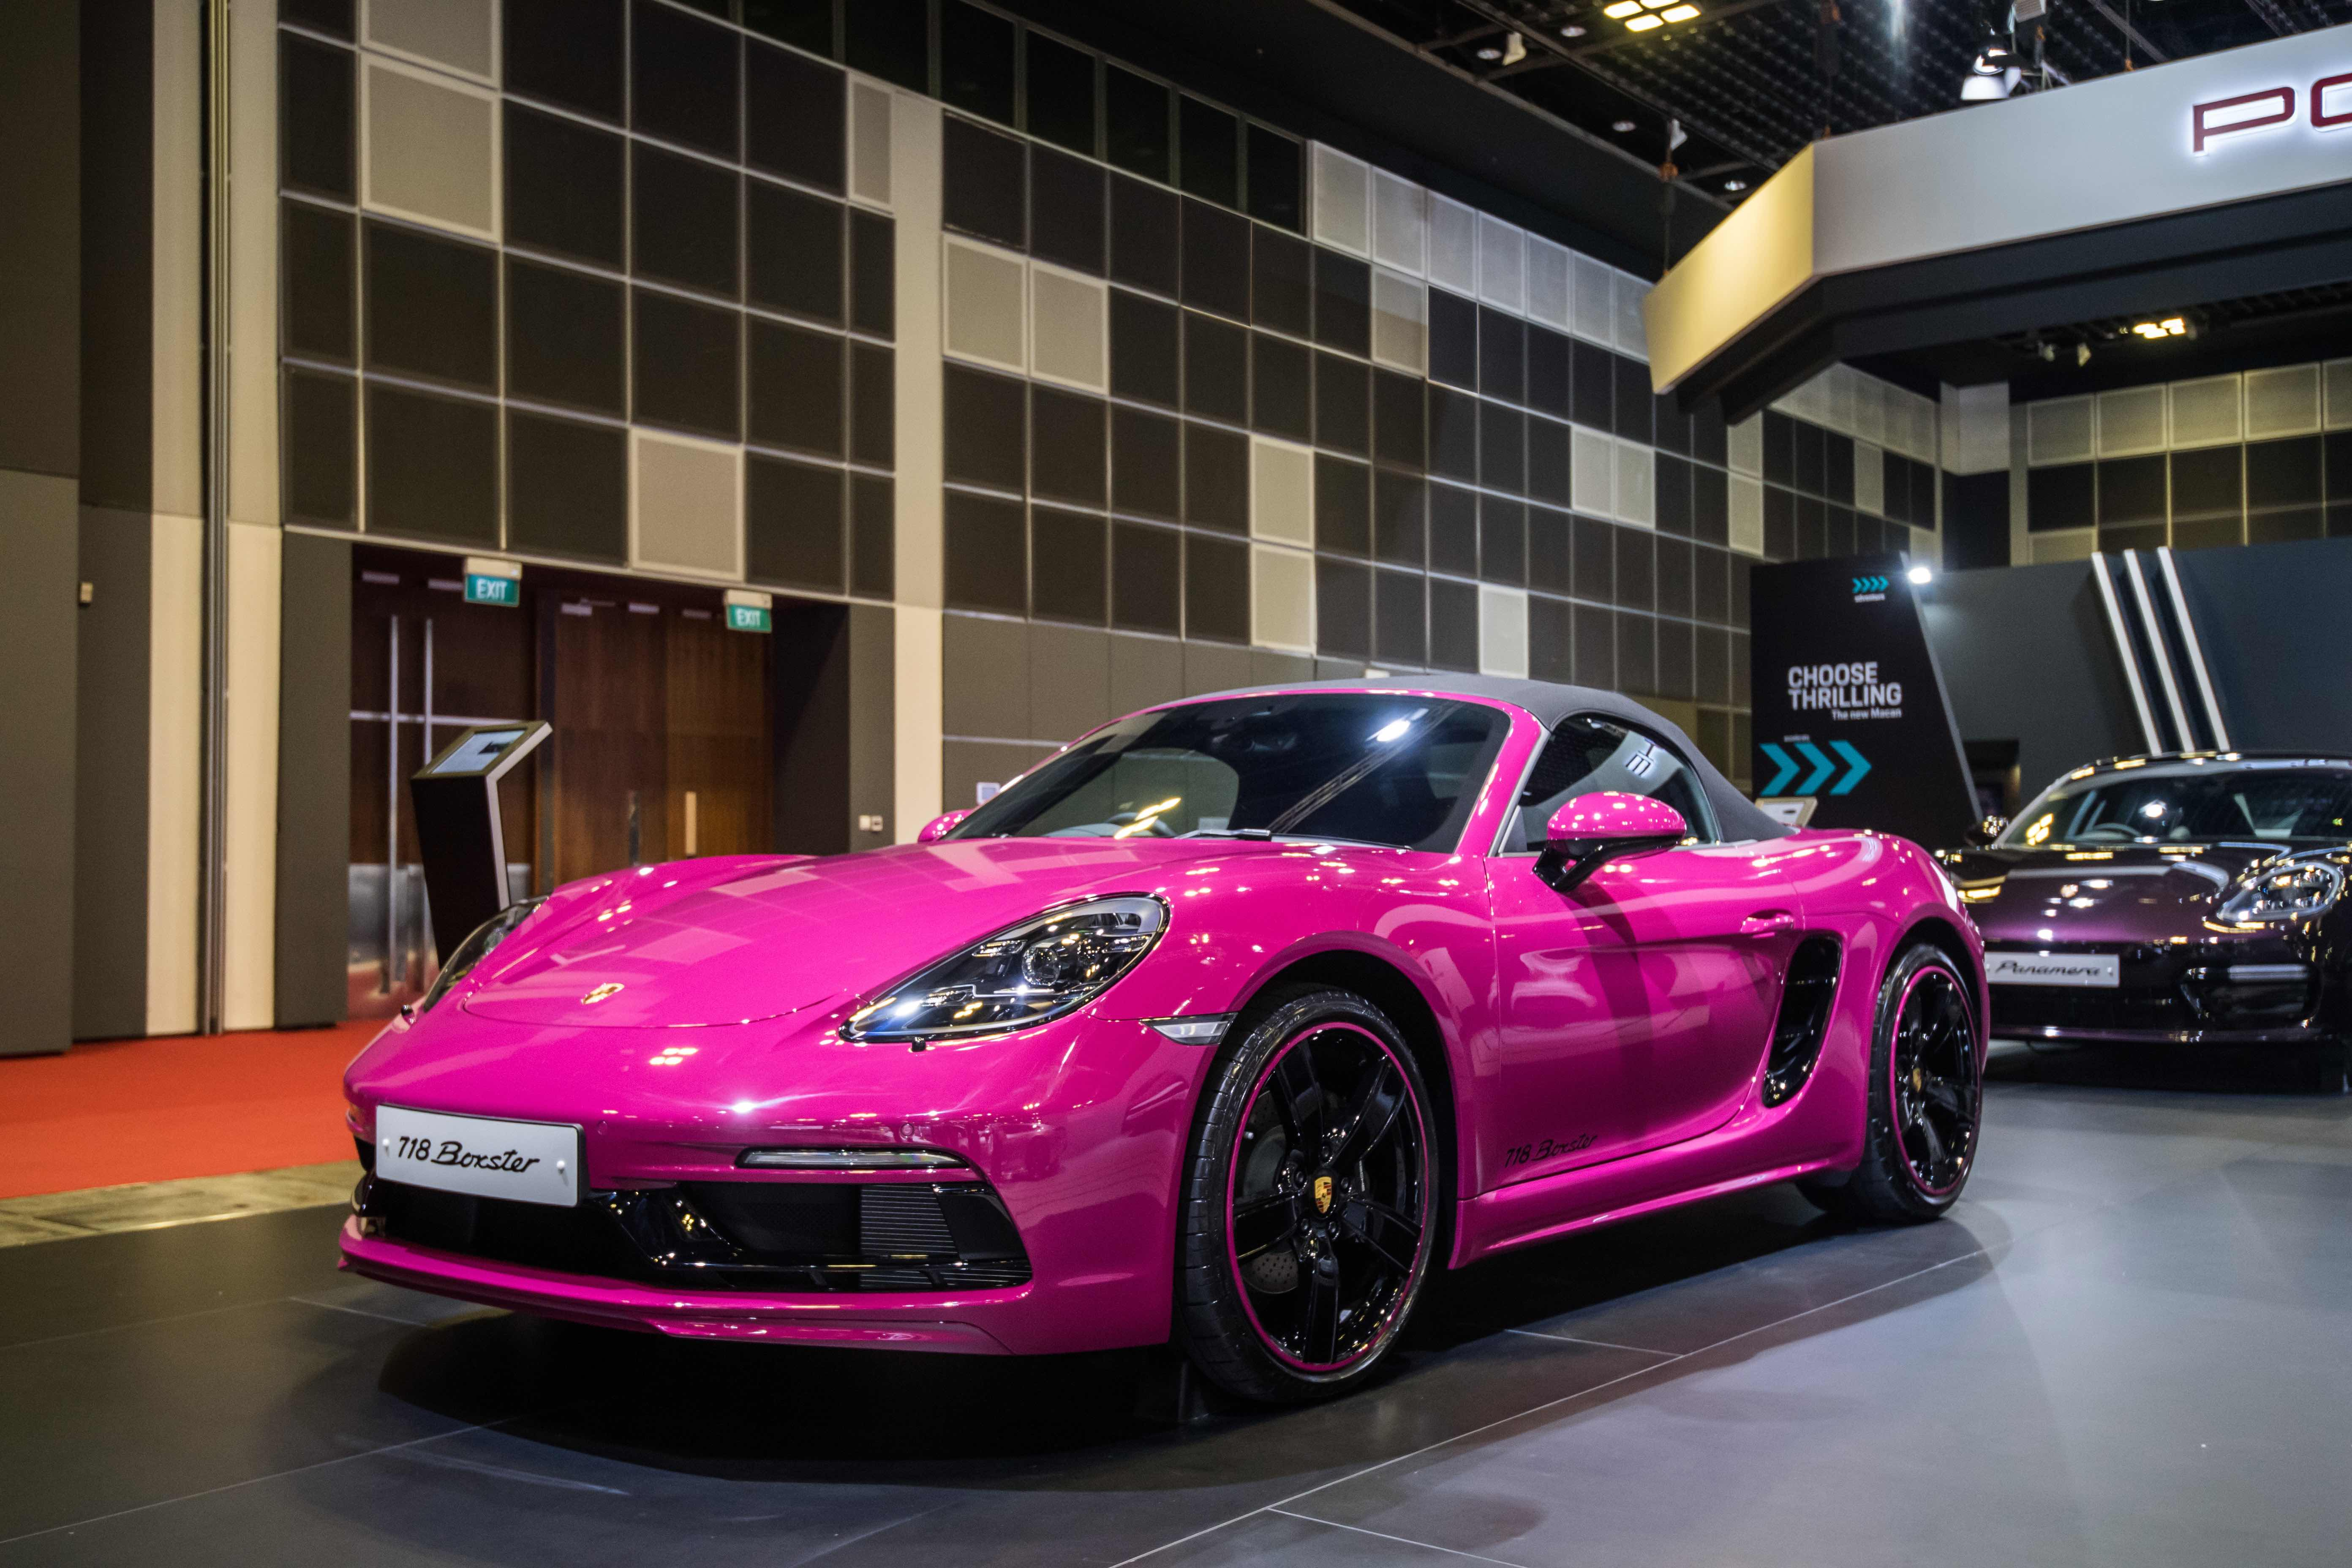 Porsche 718 Boxster at the Singapore Motorshow 2019